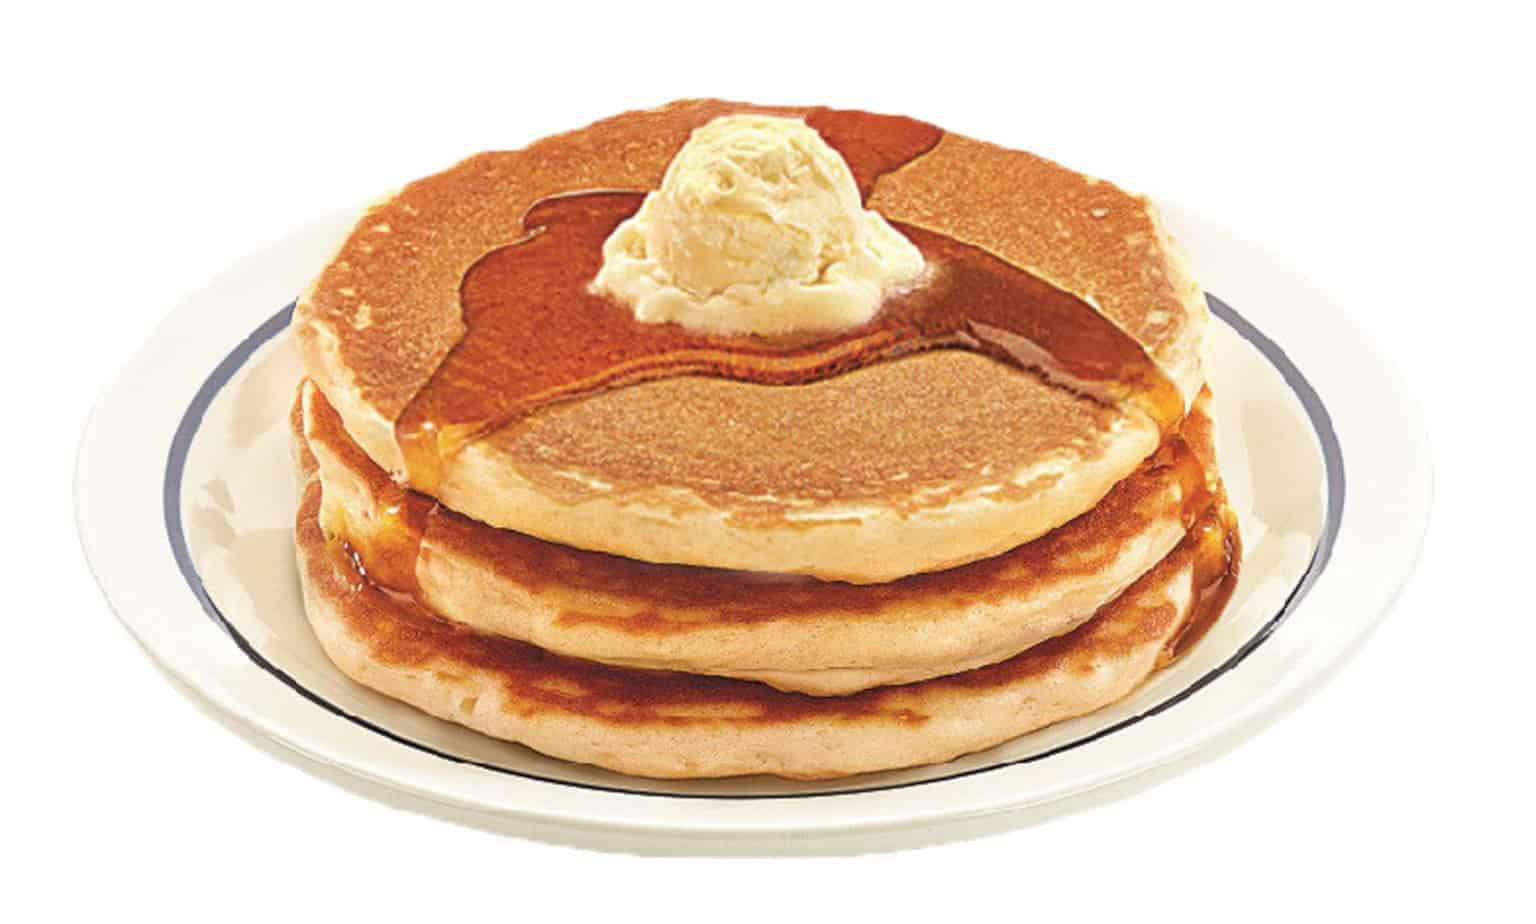 image relating to Ihop Printable Menu titled Consider shorter stack for 58 cents at IHOP - Dwelling Upon The Low-cost